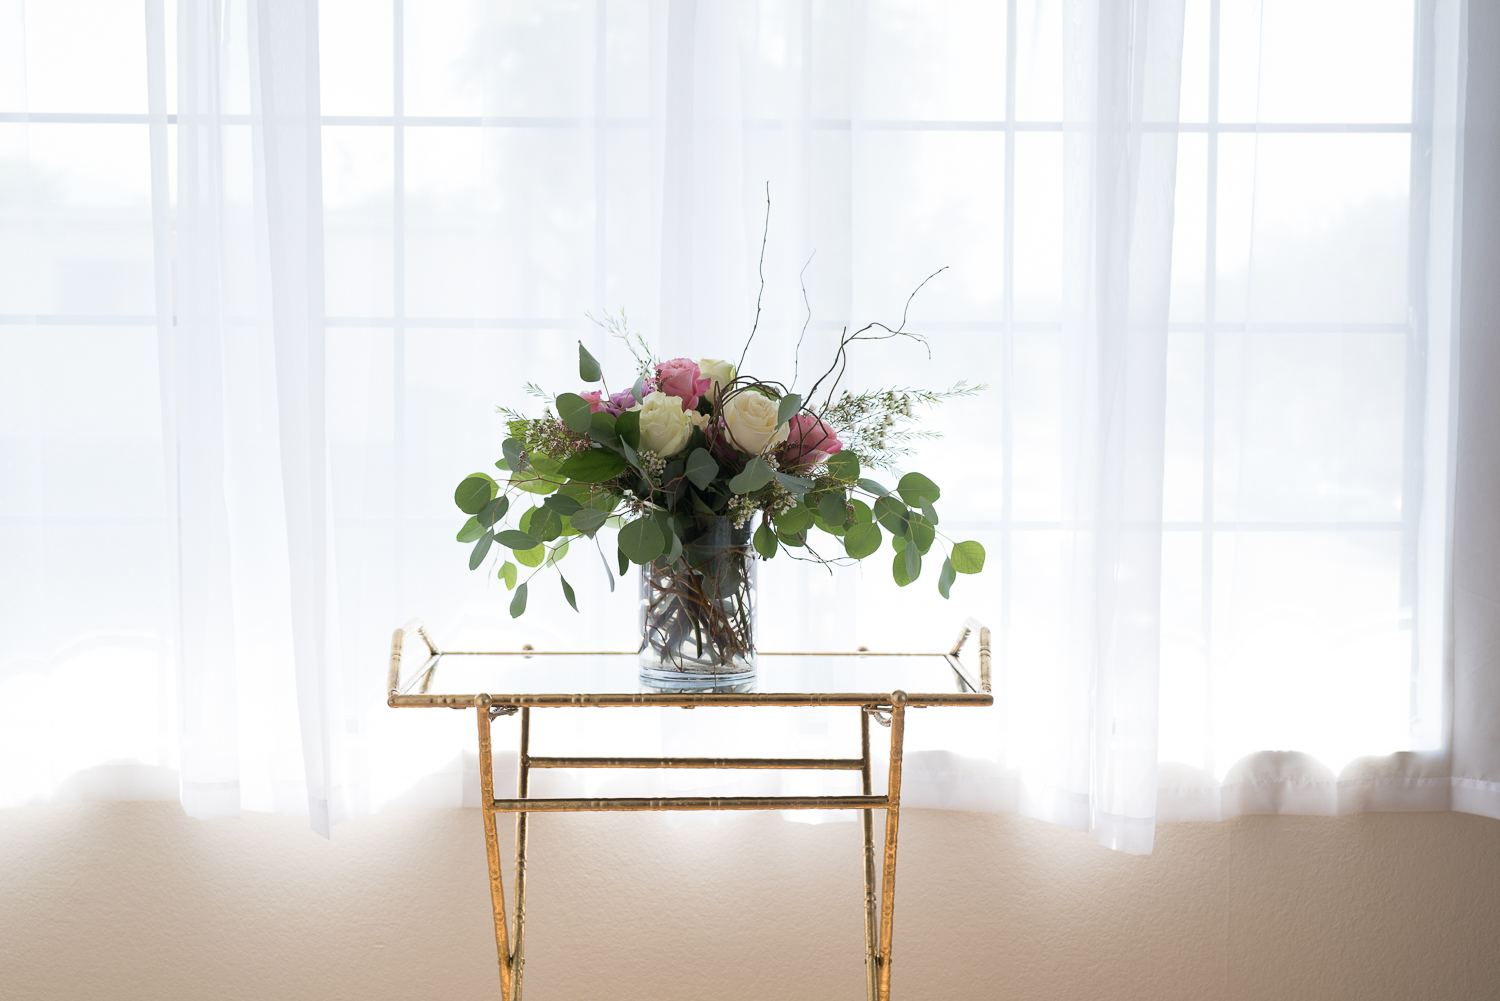 Photo of Flowers on Table